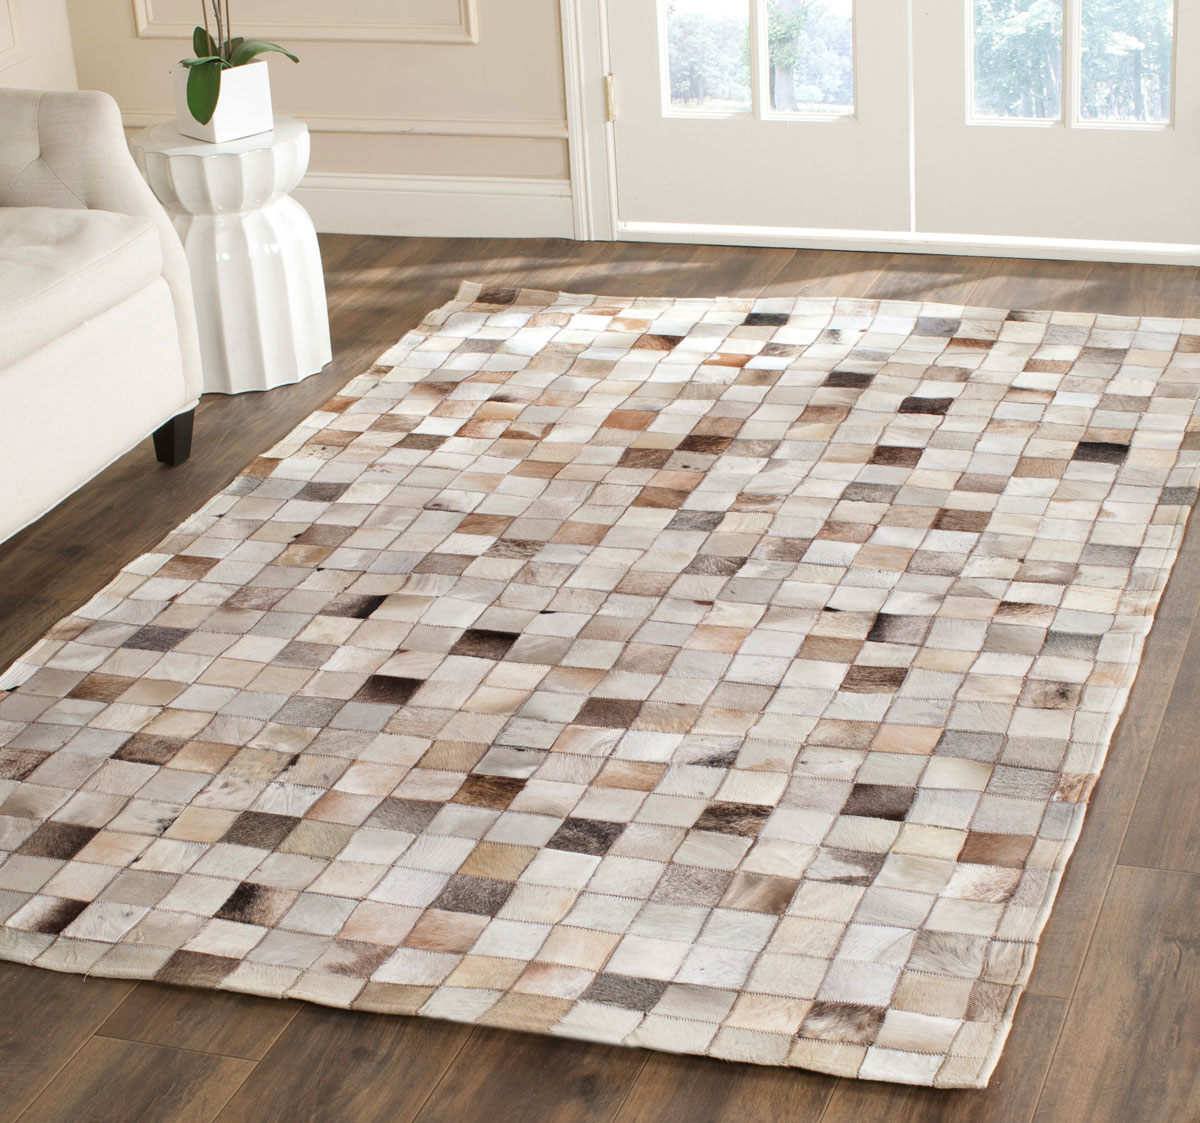 leather rug 5u0027 0 FSQZTEG